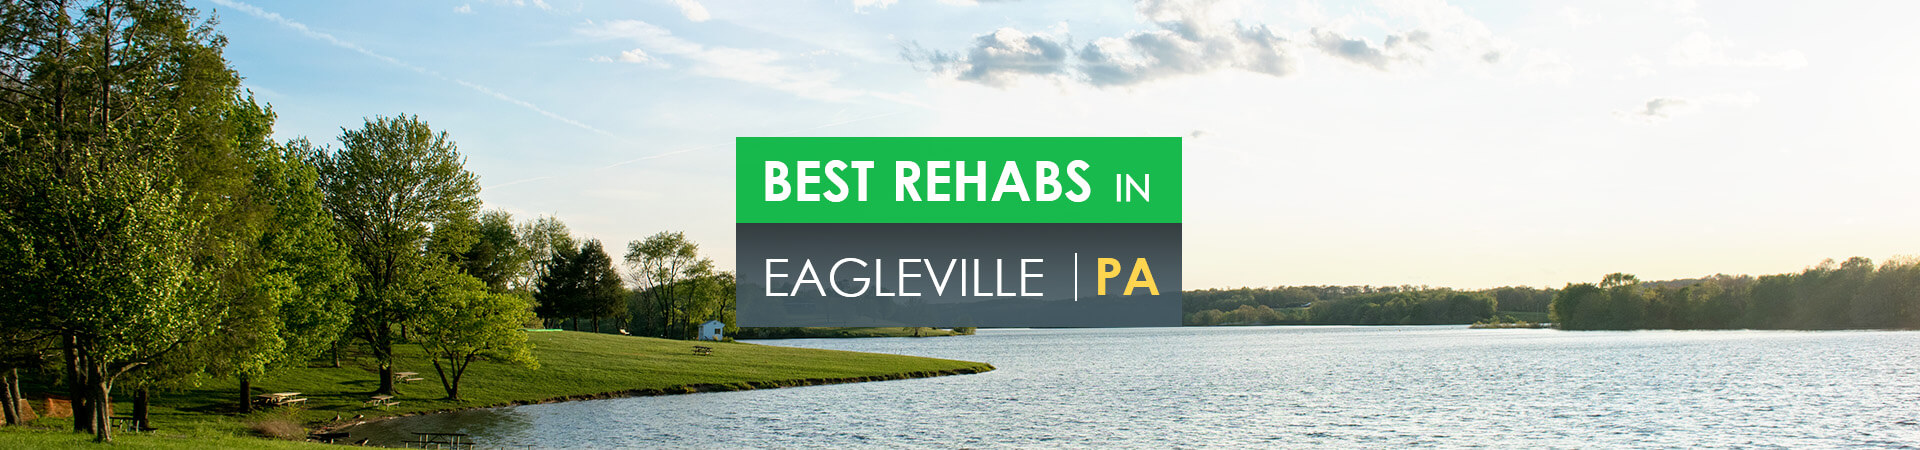 Best rehabs in Eagleville, PA